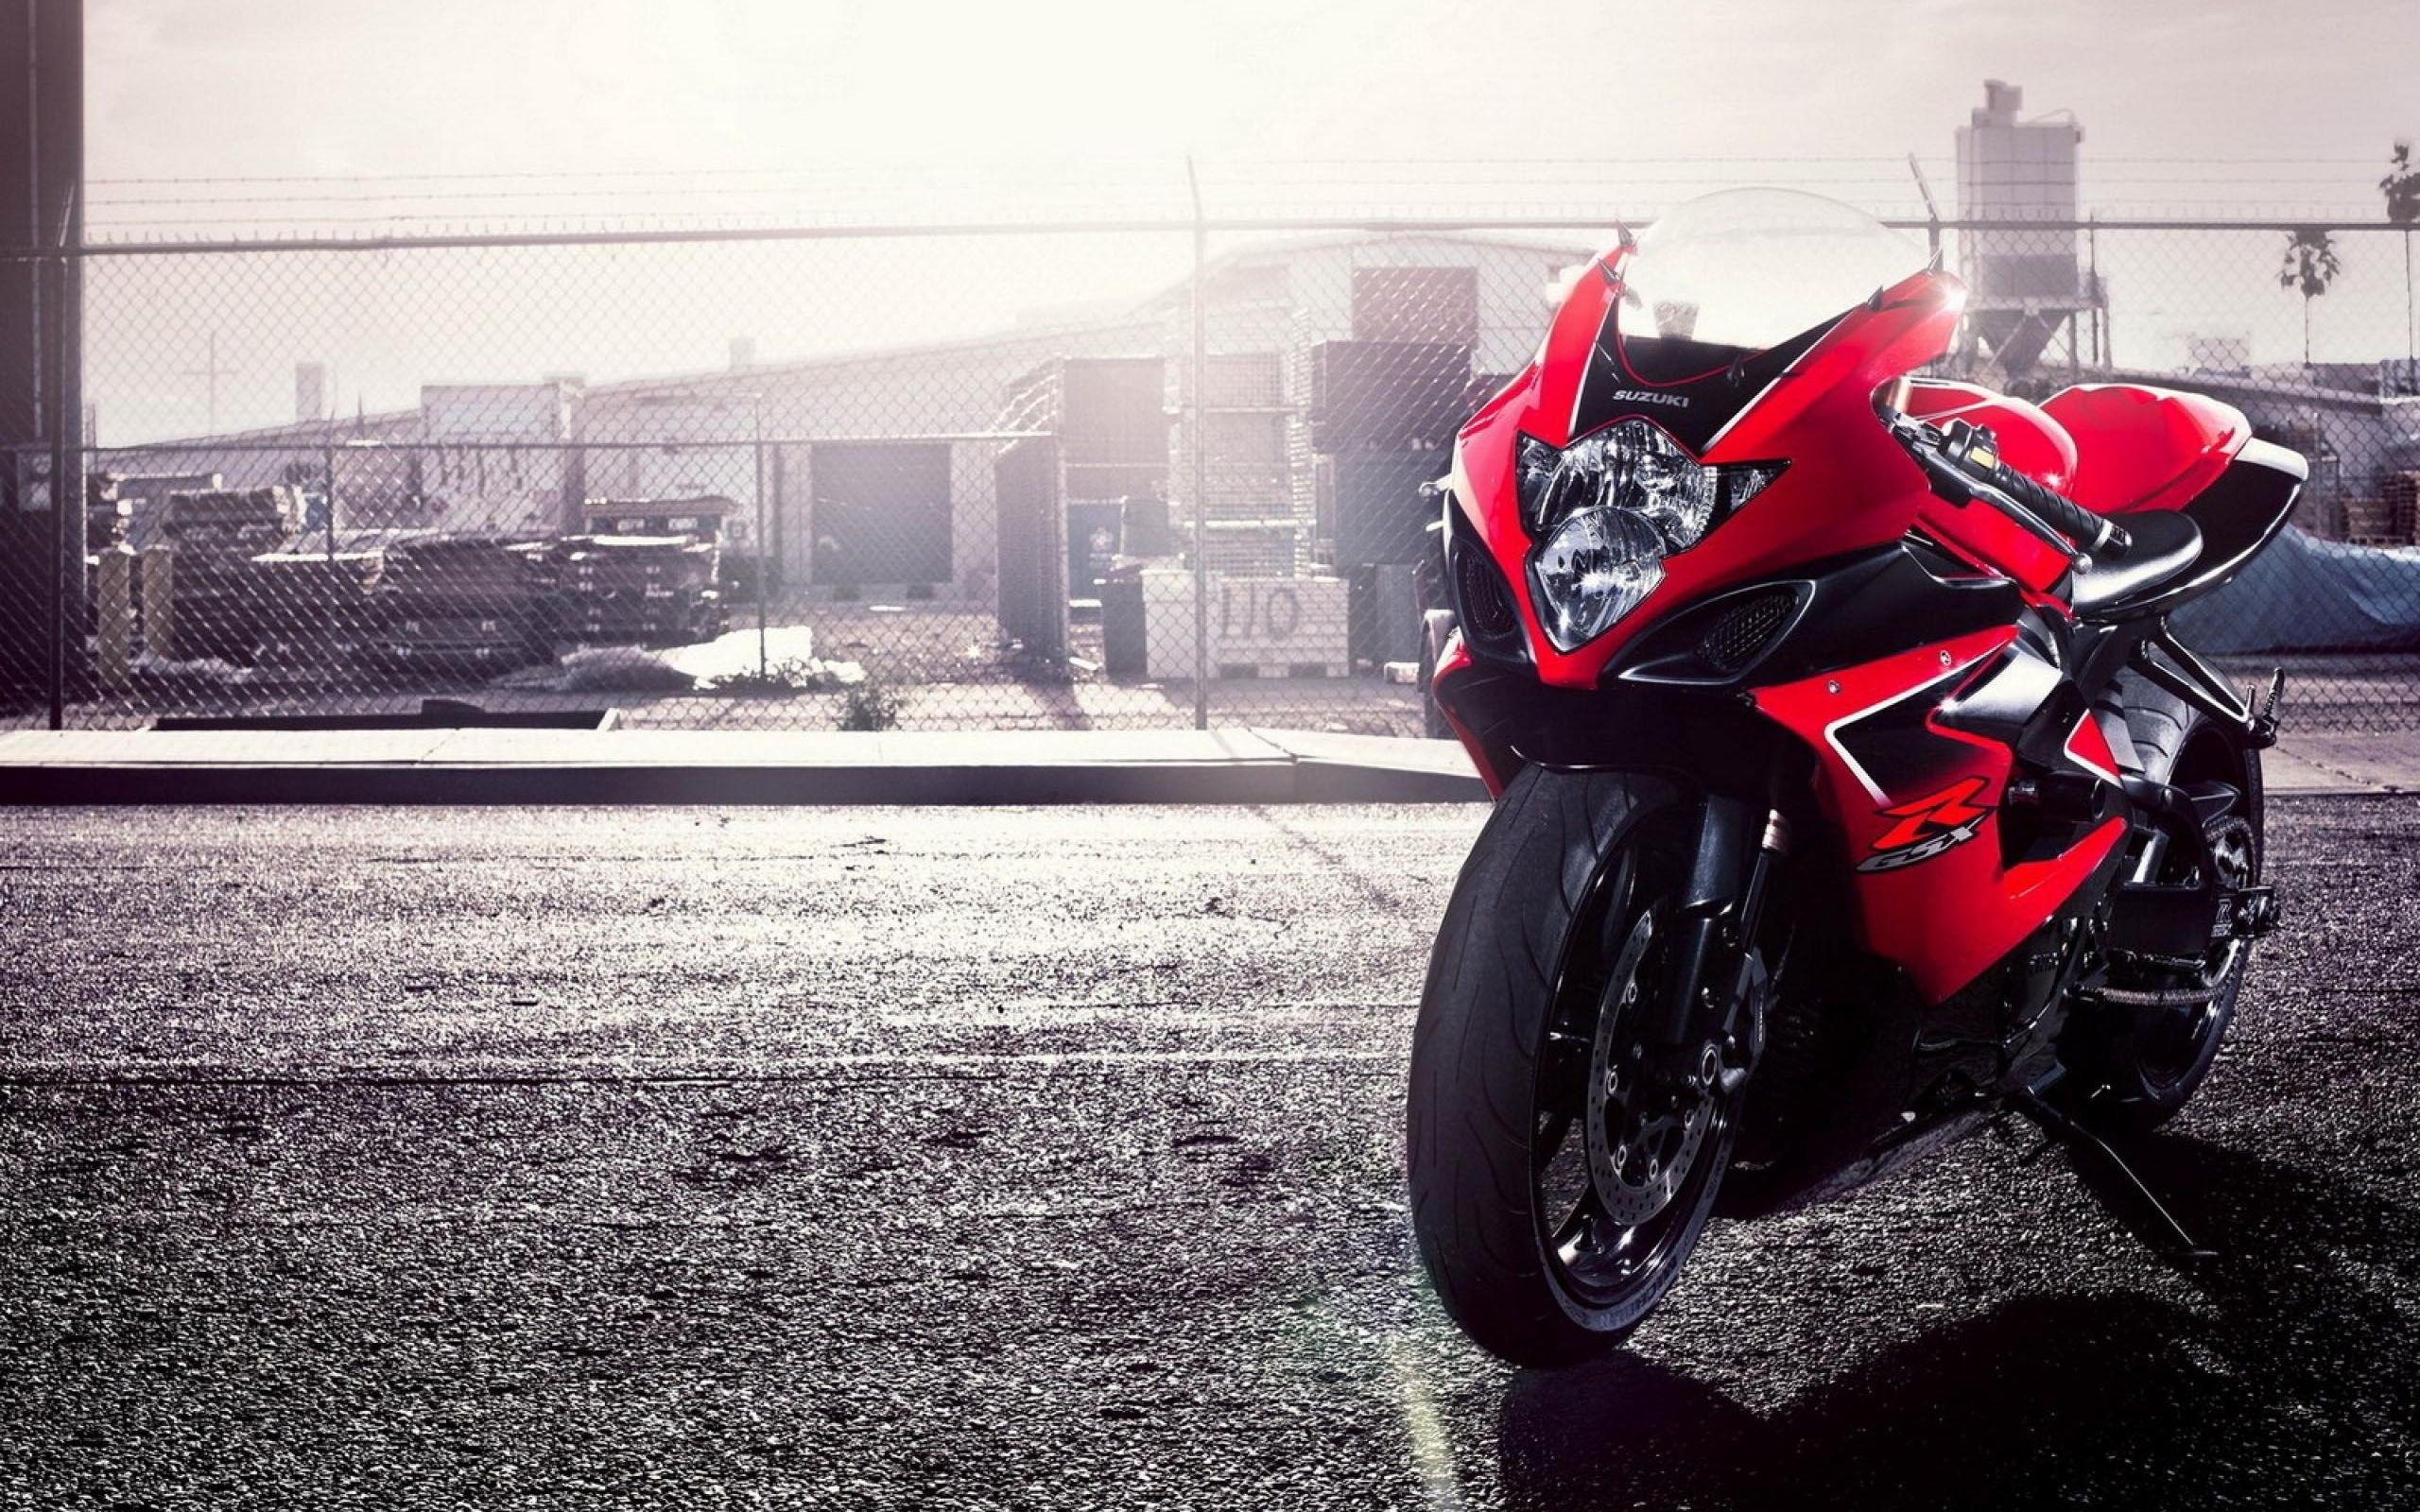 Street Bike Hd Wallpapers Wallpaperstunnel Motorcycle Wallpaper Suzuki Bikes Suzuki Gsxr